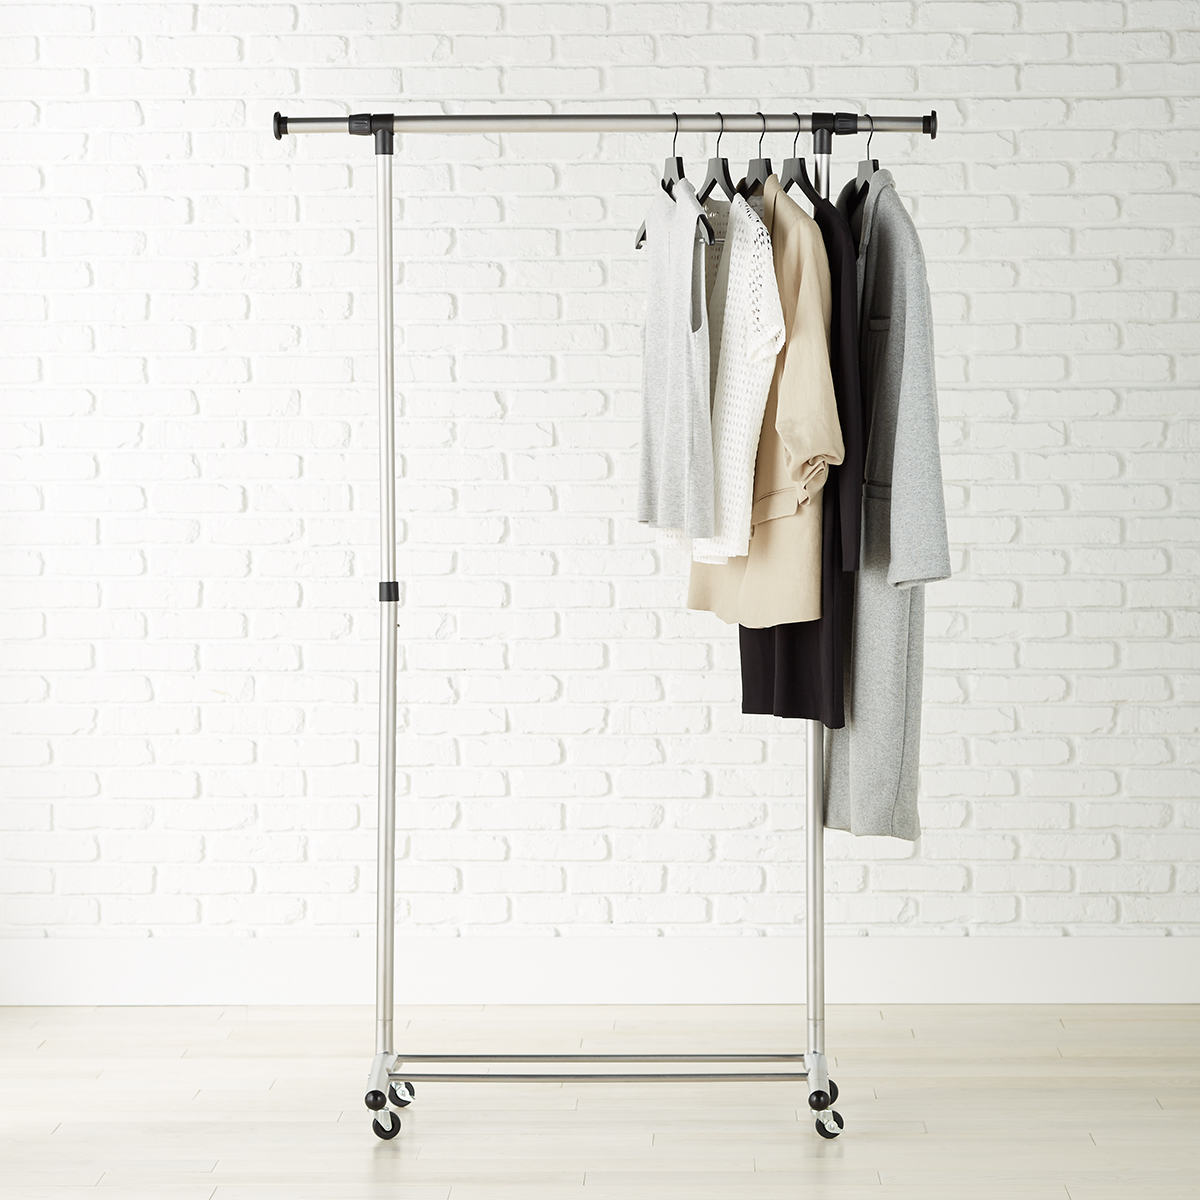 Brushed Chrome Metal Clothes Rack